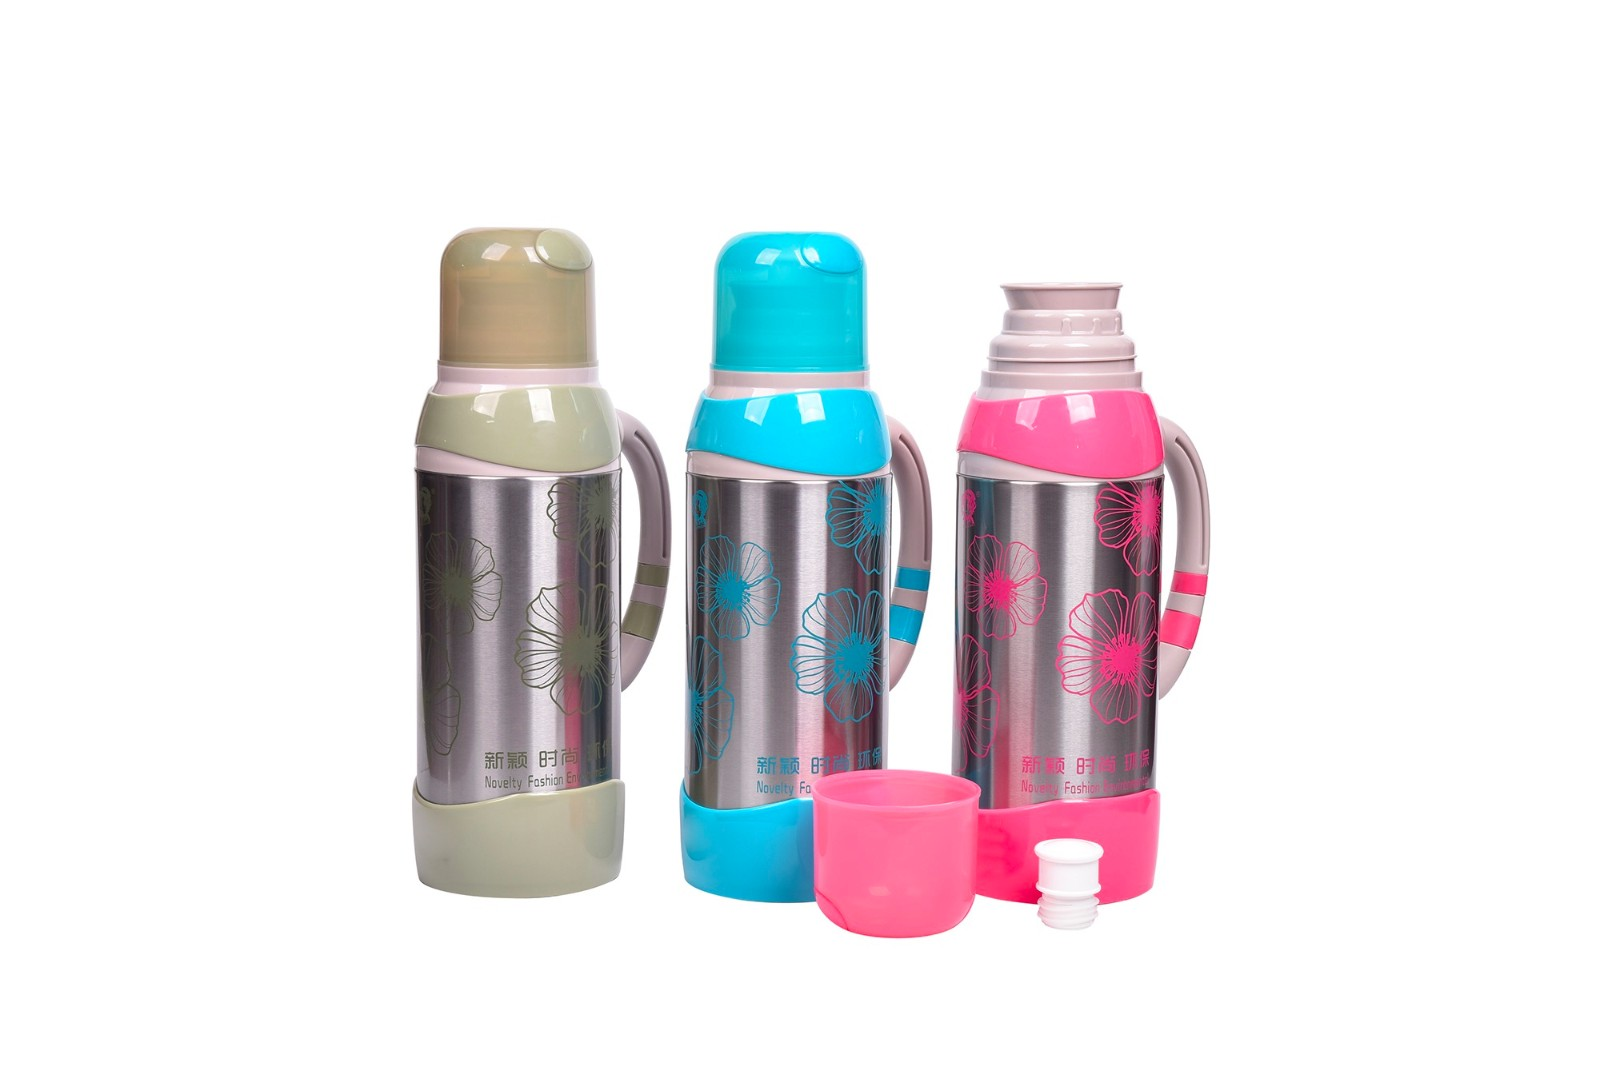 High quality 2.0L glass interior stainless steel printing thermos bottle Quotes,China 2.0L glass interior stainless steel printing thermos bottle Factory,2.0L glass interior stainless steel printing thermos bottle Purchasing